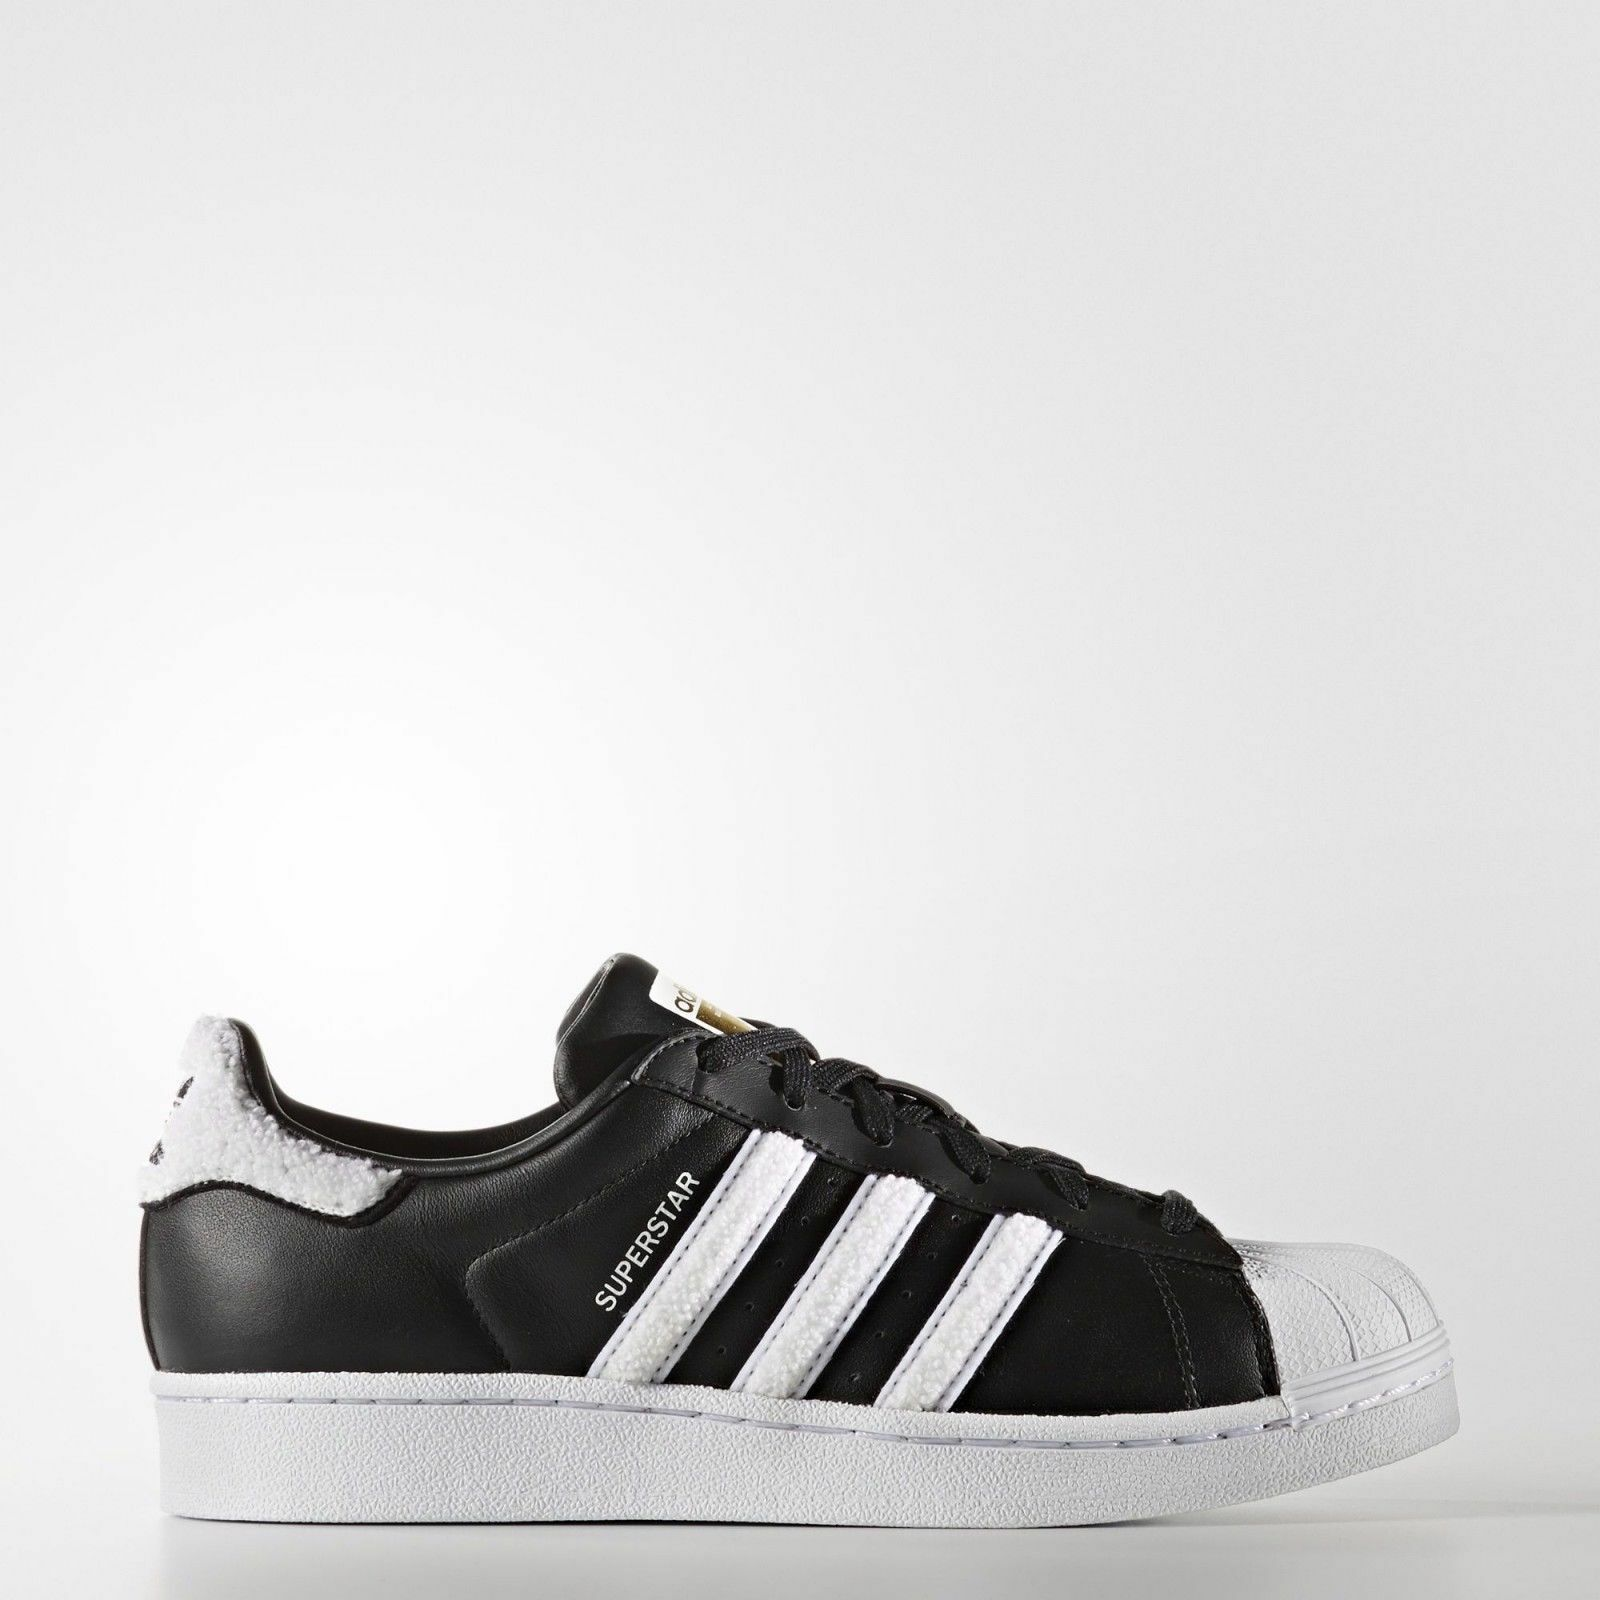 9066f2a054967  Adidas  S76149 Originals Superstar Women Men Running Shoes Sneakers  Sneakers Sneakers Black b5bfc8